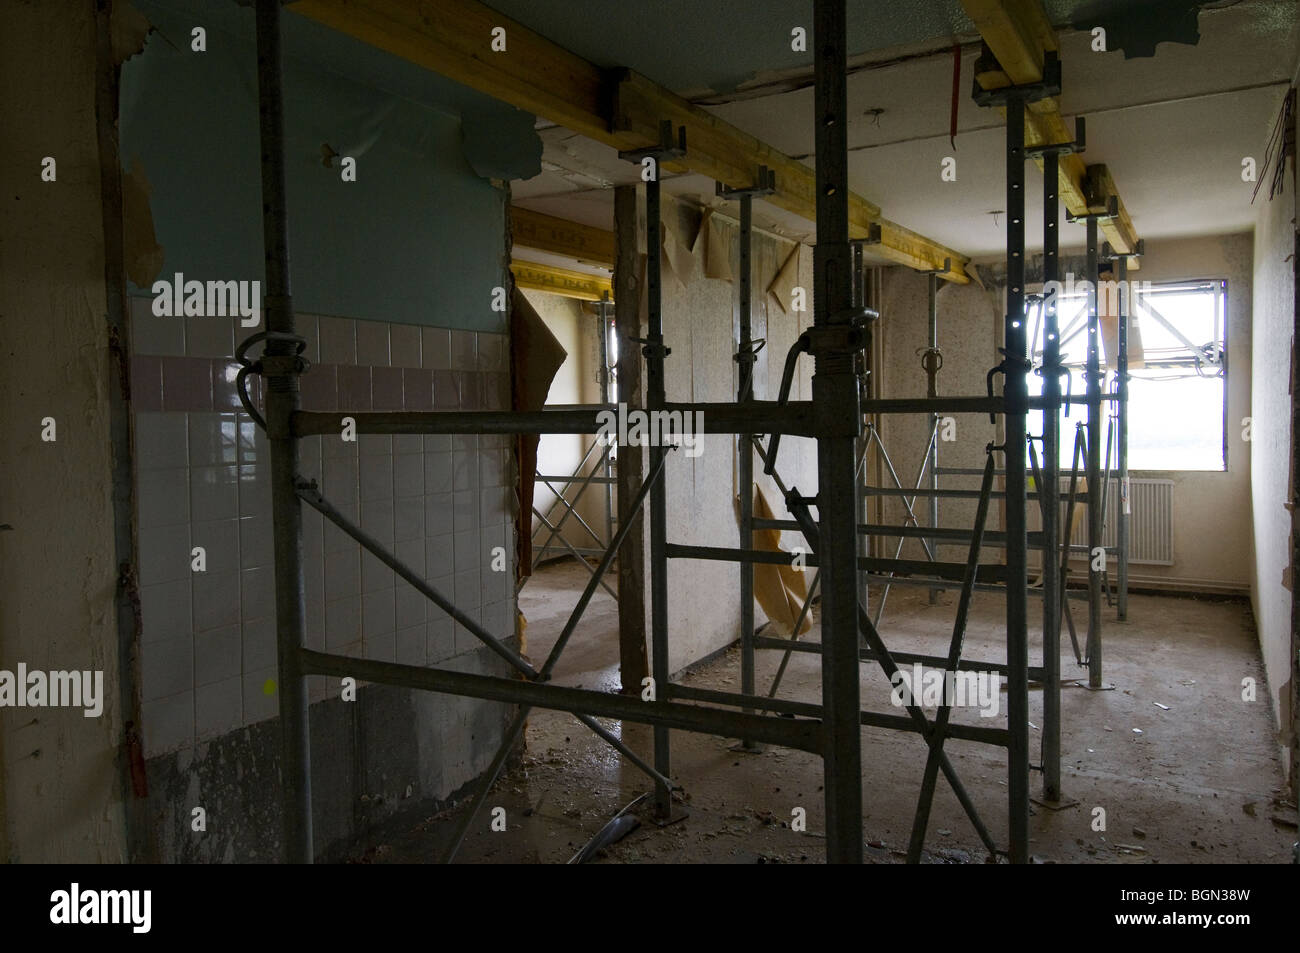 Shoring of a floor of a building in deconstruction to deposit mini demolition machines above. - Stock Image